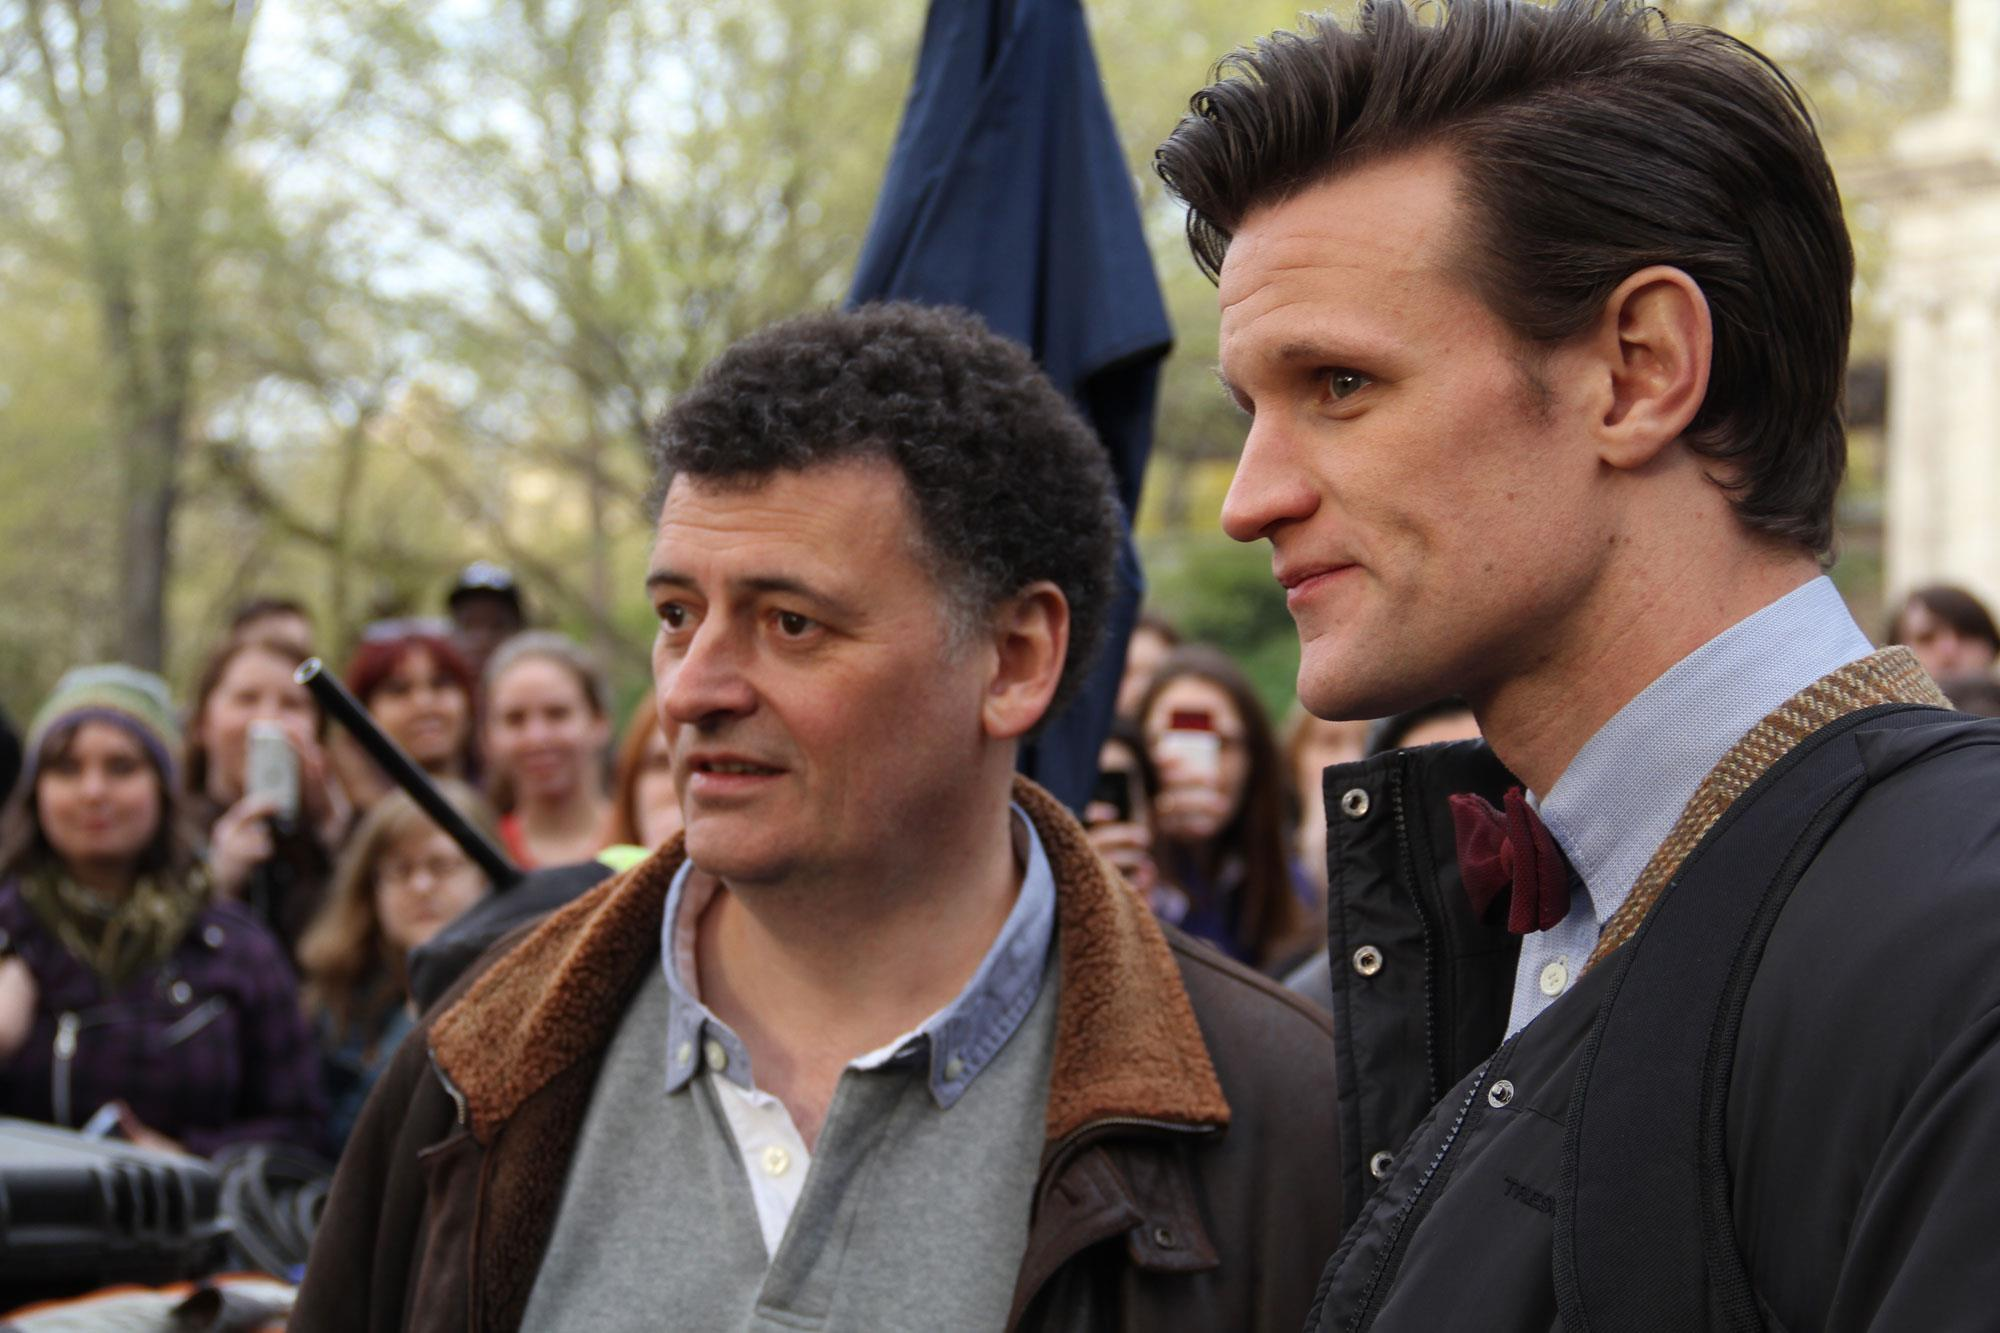 Central Park crowds look on as Steven Moffat and Matt Smith are hard at work shooting an upcoming episode in New York City.